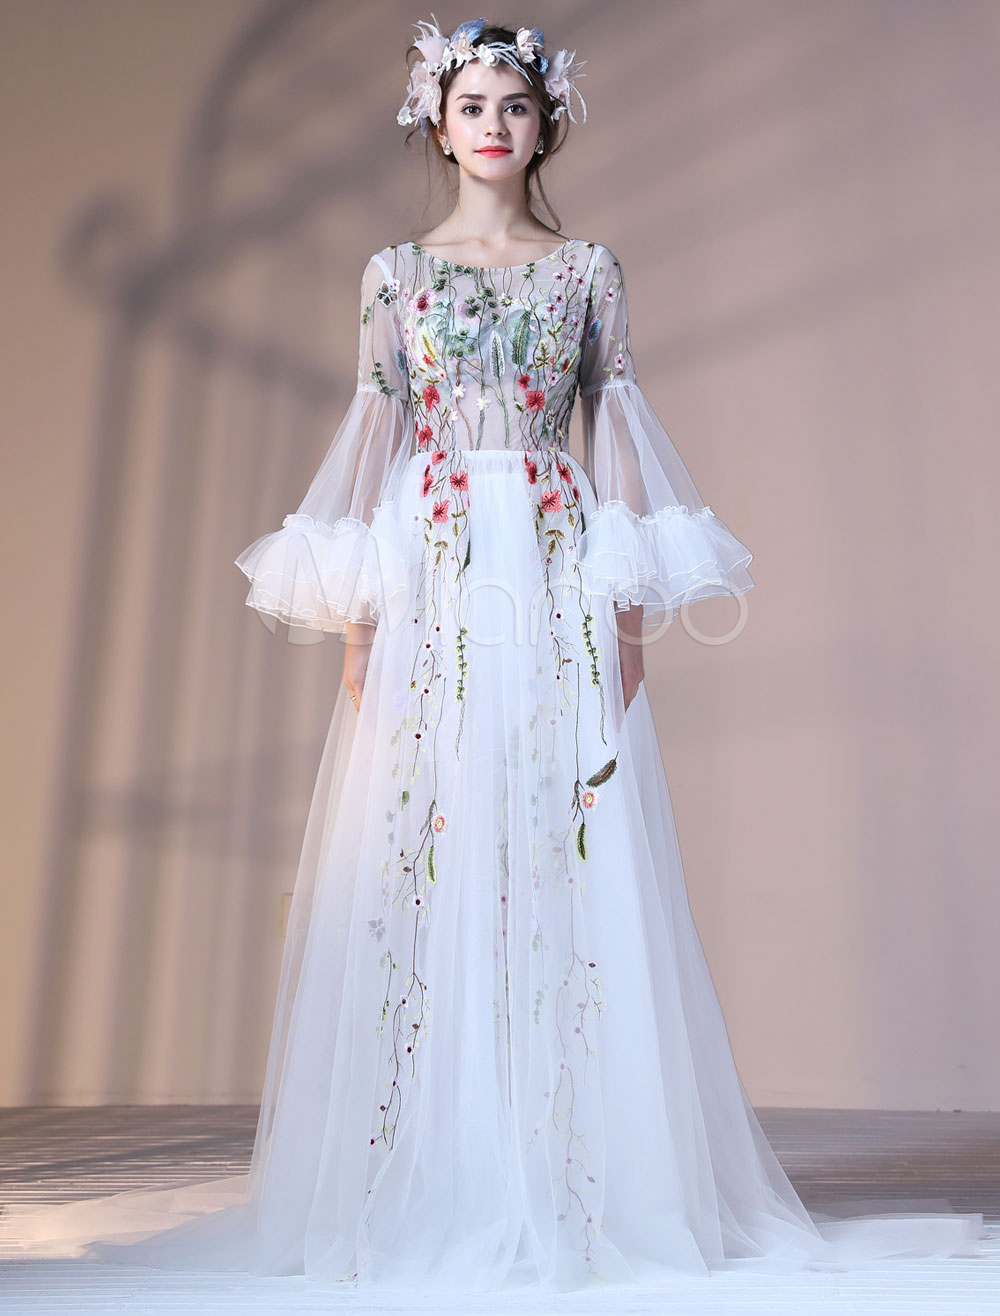 Luxury Prom Dresses Long Bell Sleeve Flowers Embroidered Round Neck Formal Dress (Wedding) photo